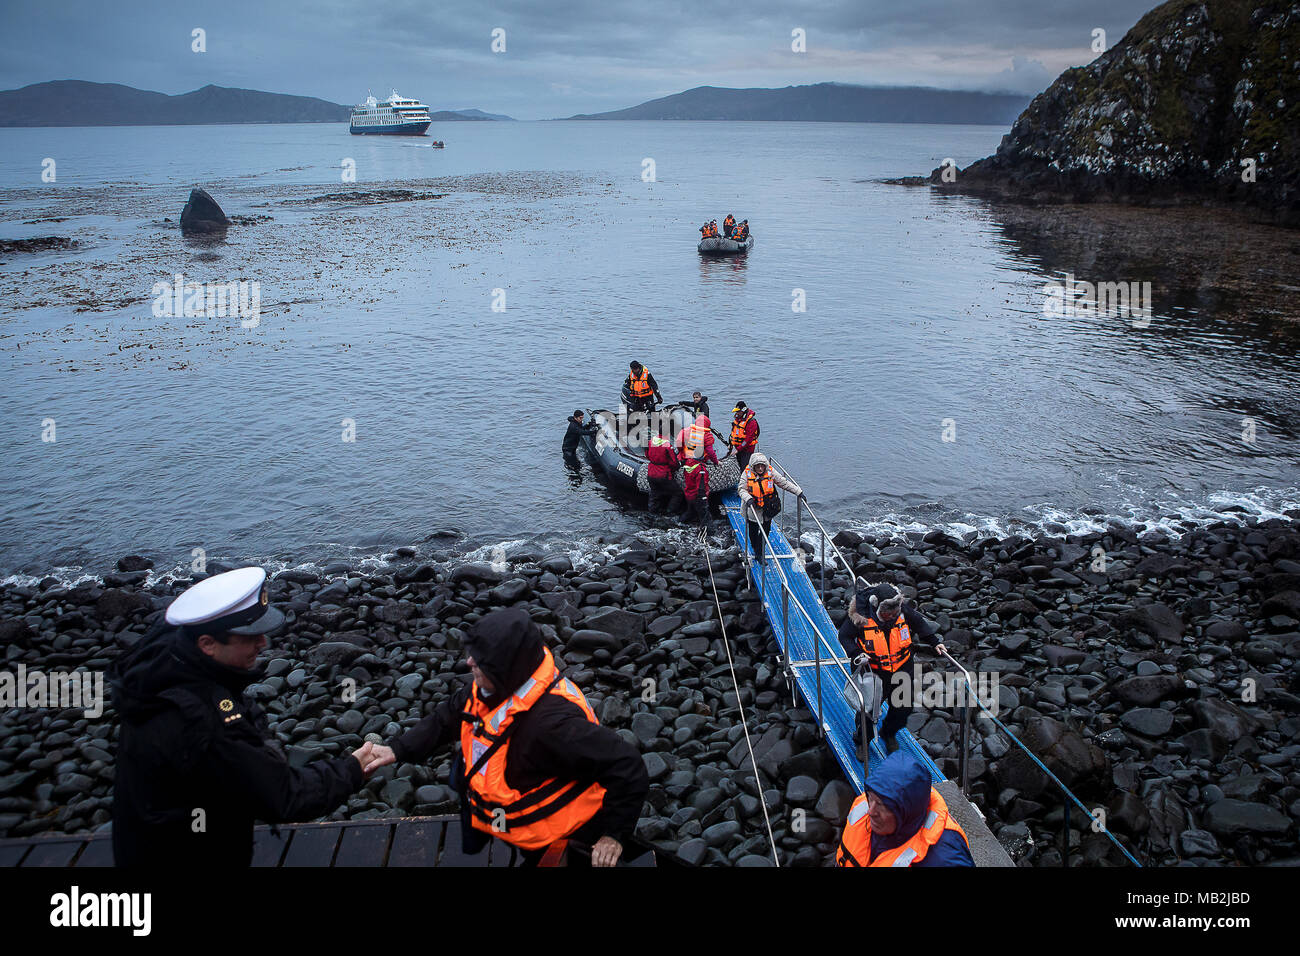 Man who works as a lighthouse keeper in the cape receives the expedition. The explorers disembark at Cape Horn, Tierra de Fuego, Patagonia, Chile - Stock Image